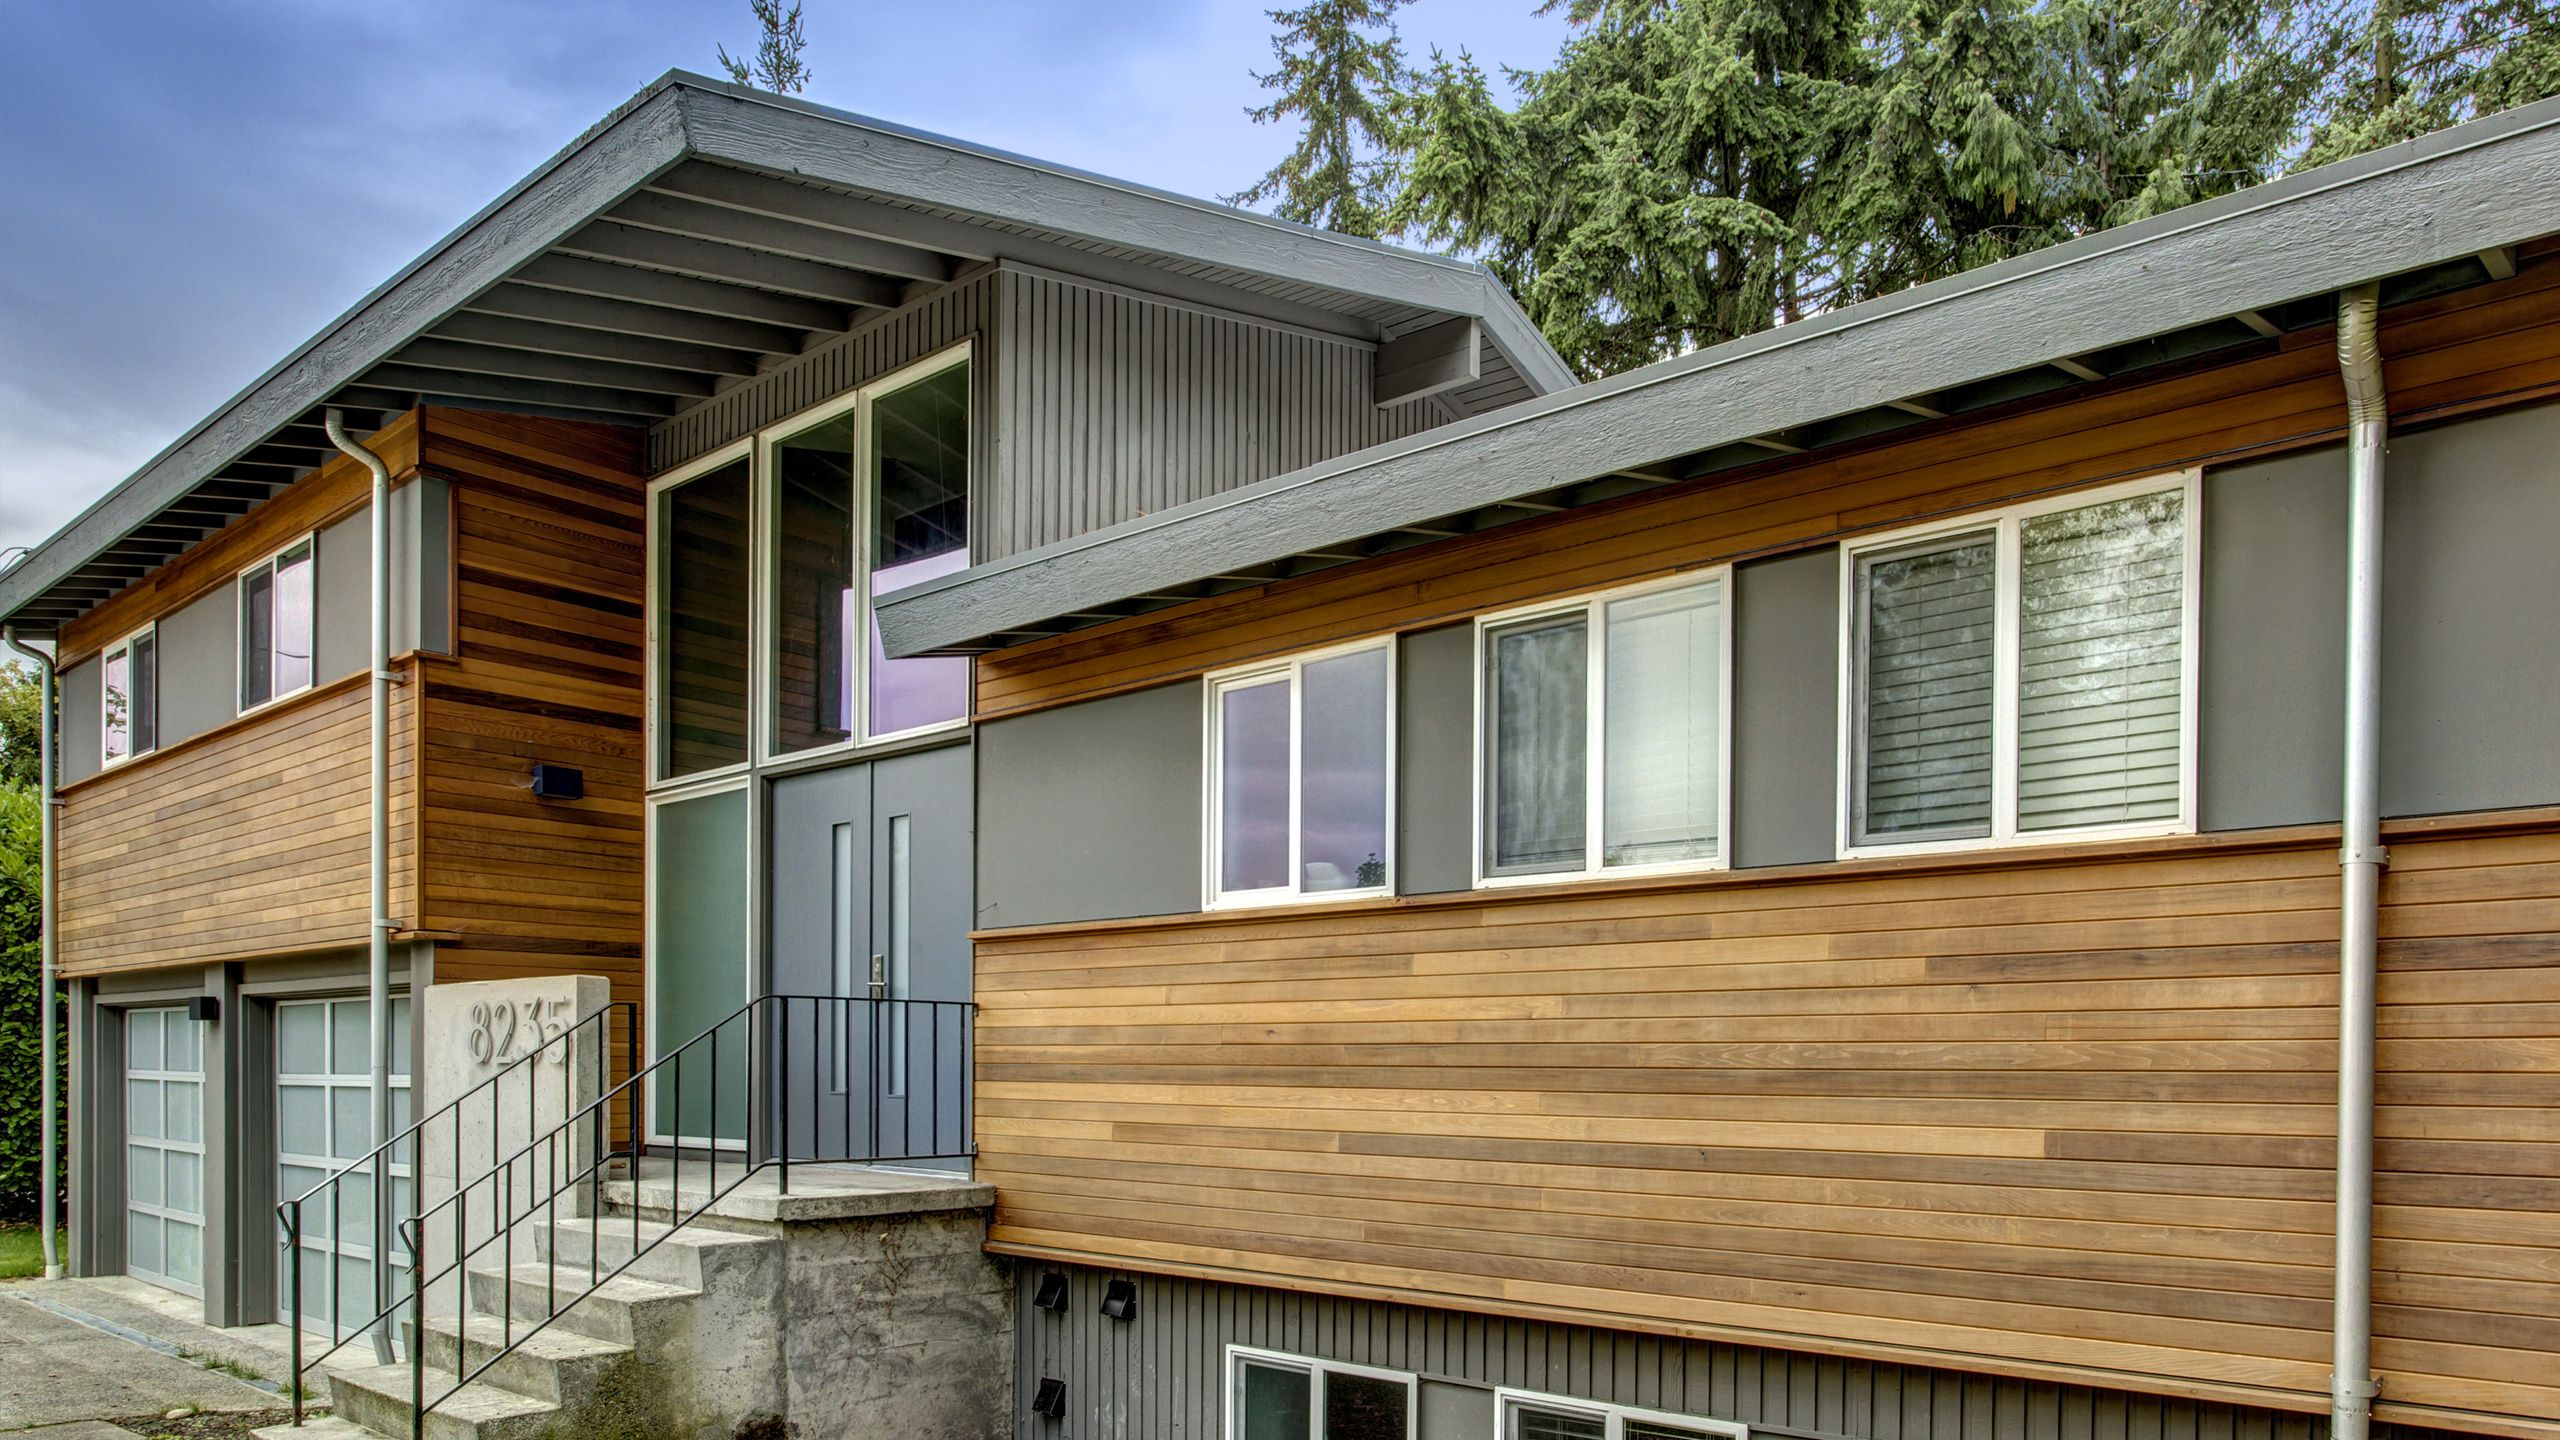 This split level remodel created a refreshed modern look for this 1970s home with careful for 1970 house exterior renovation